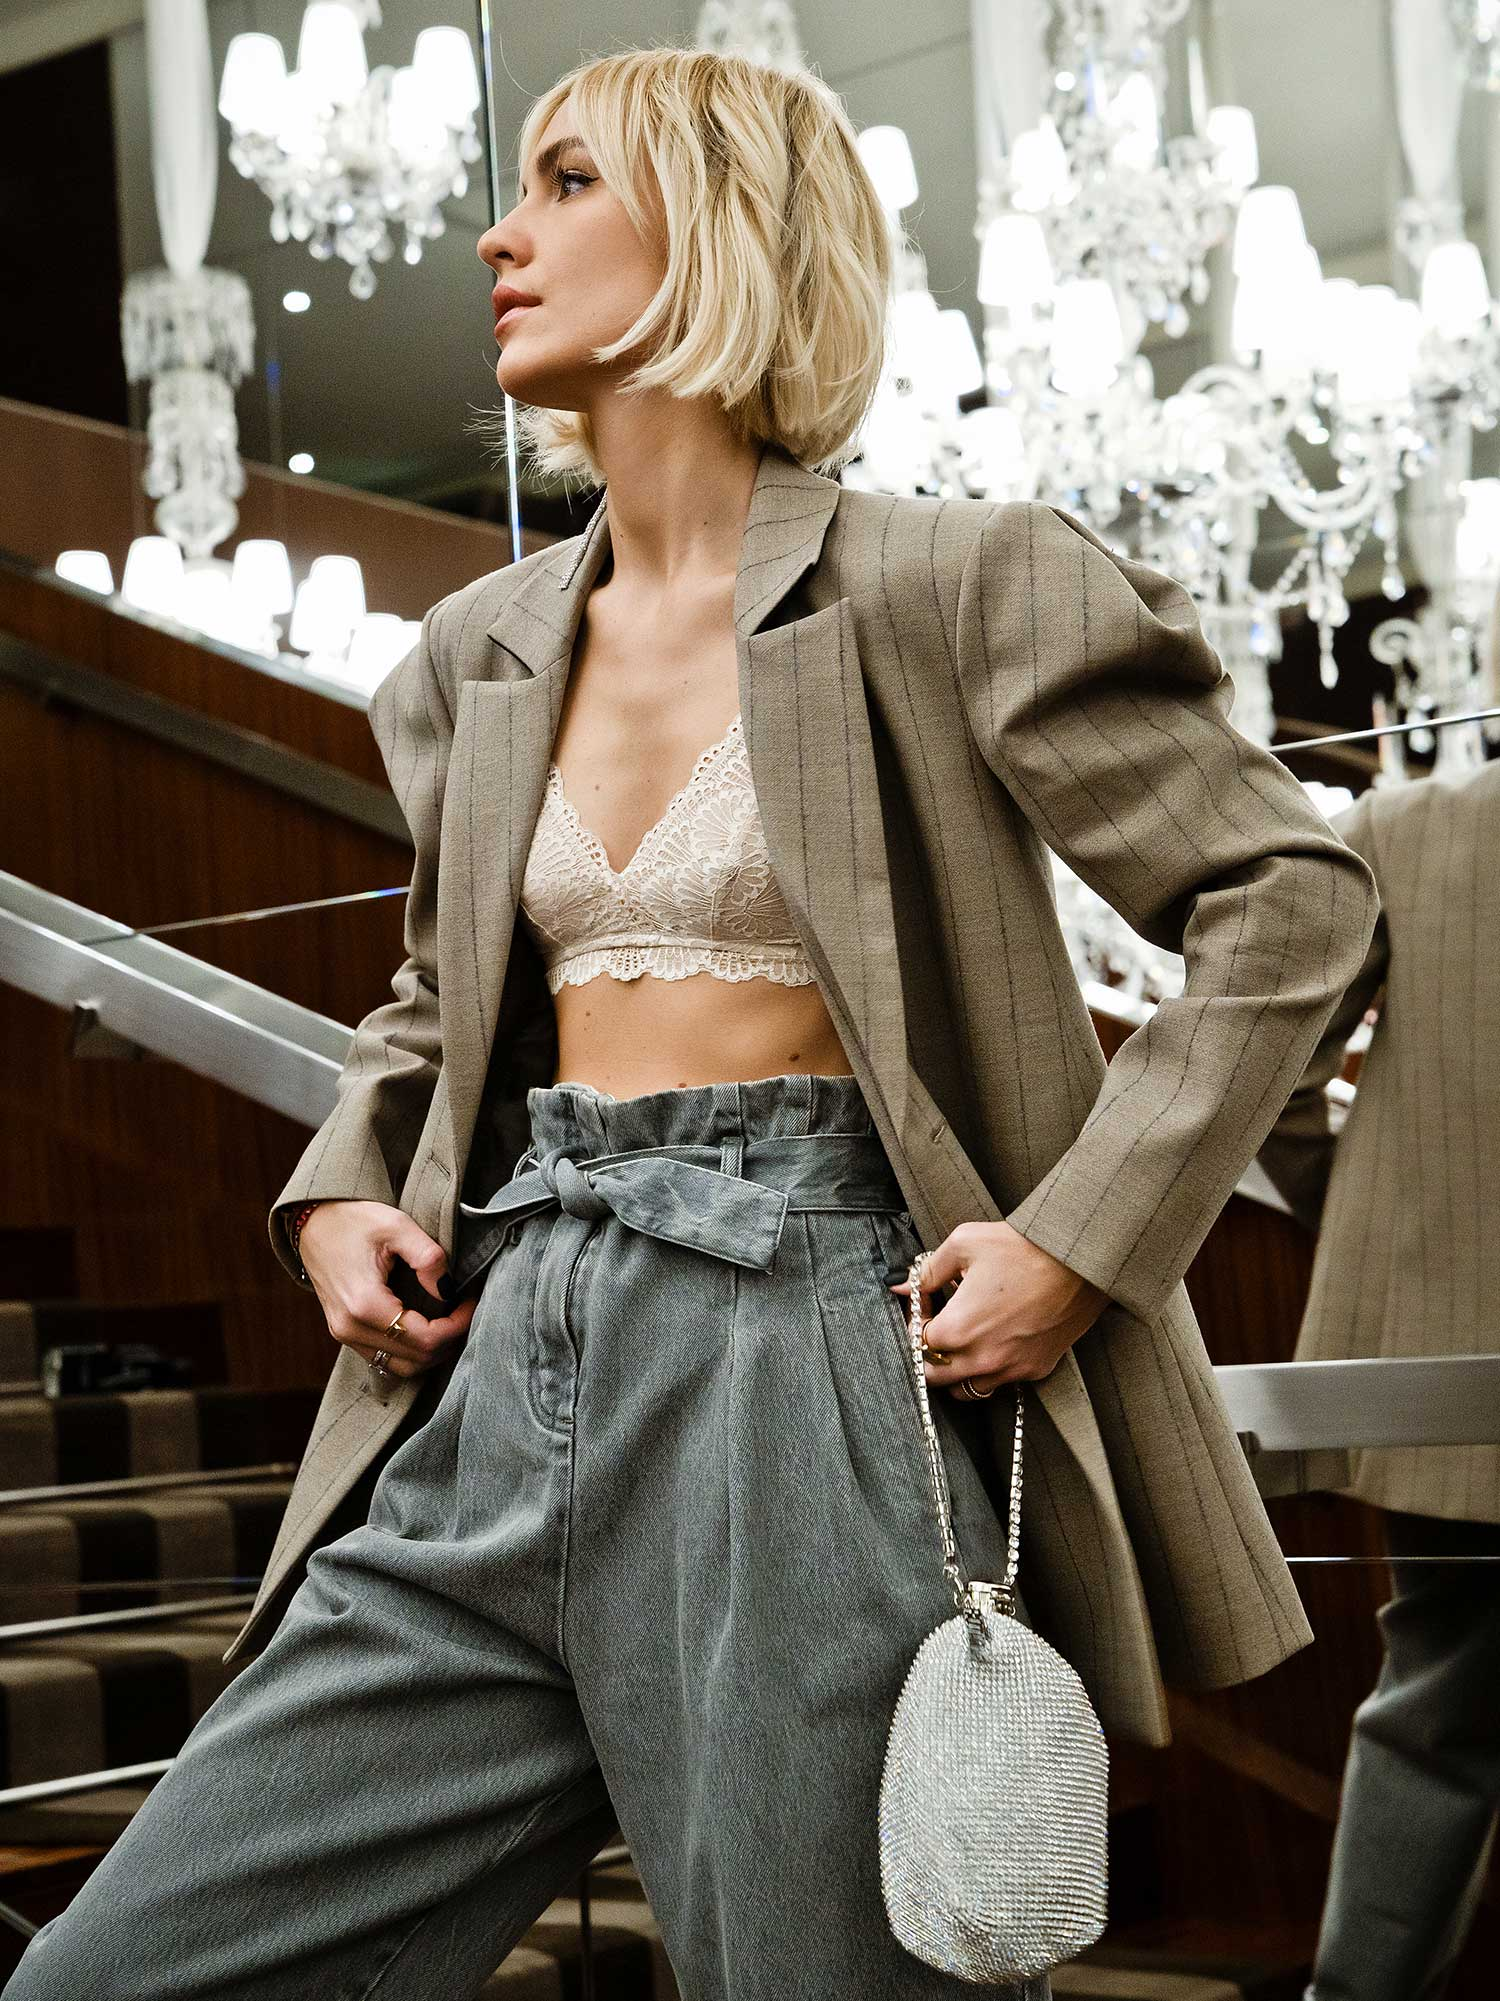 Viktoria Rader at Paris Fashion Week with Mey triangle bra in color New Pearl combined with oversize blazer and slouchy denim.   mey®